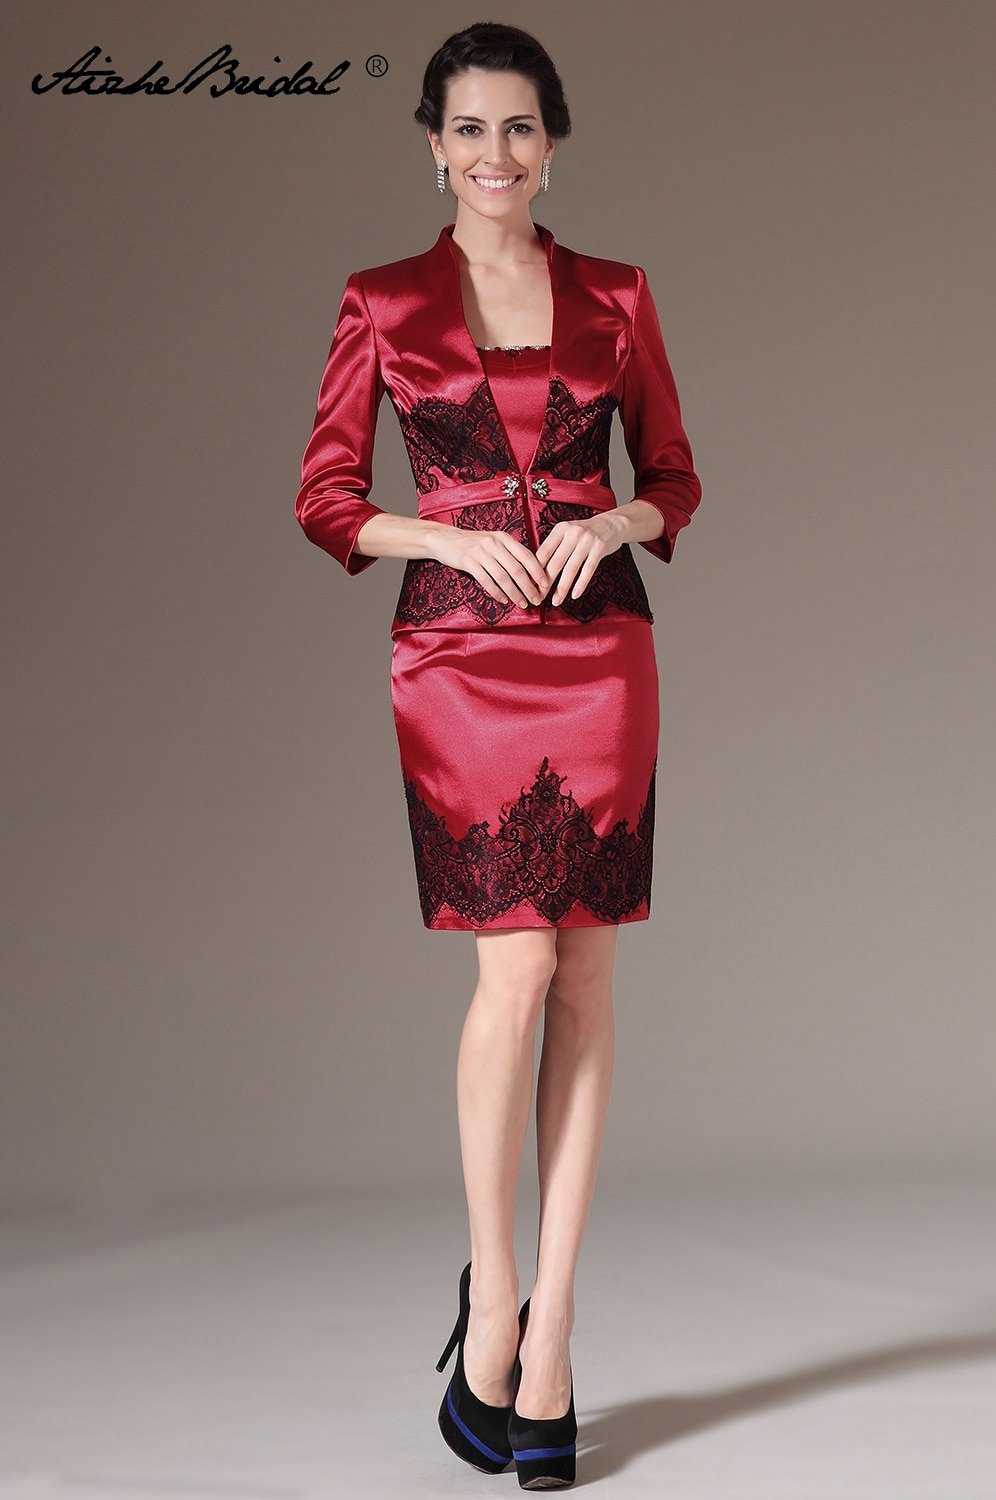 Real Photos NEW Elegant Above Knee Strapless Burgundy Satin Black Lace Short Mother of the Bride Dresses with Jacket